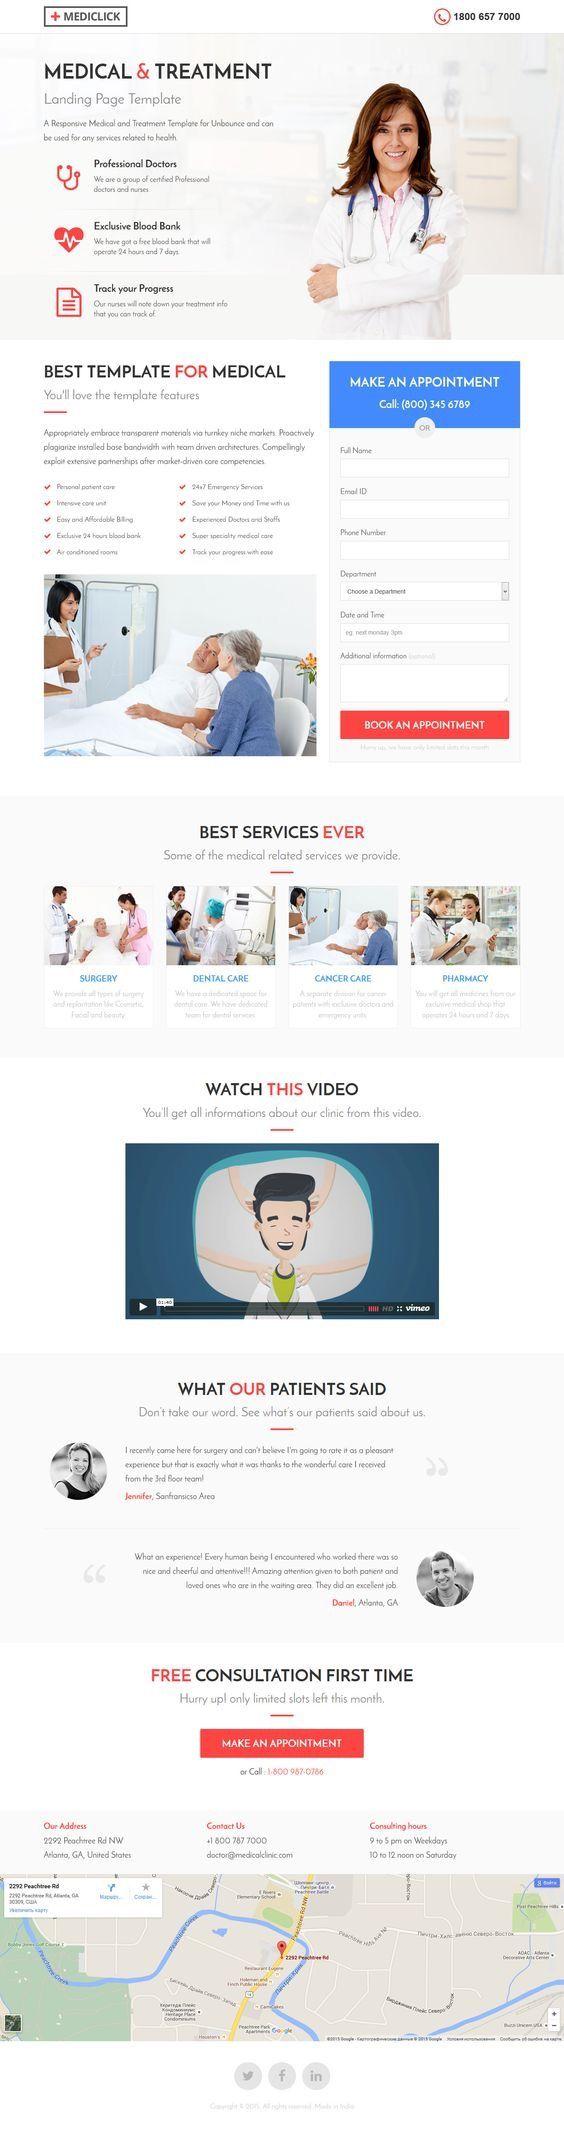 Medical, Spa, Yoga & Fitness Landing Page Template. Download: http://themeforest.net/item/medical-spa-yoga-fitness-landing-page-template/13386341?ref=skarin